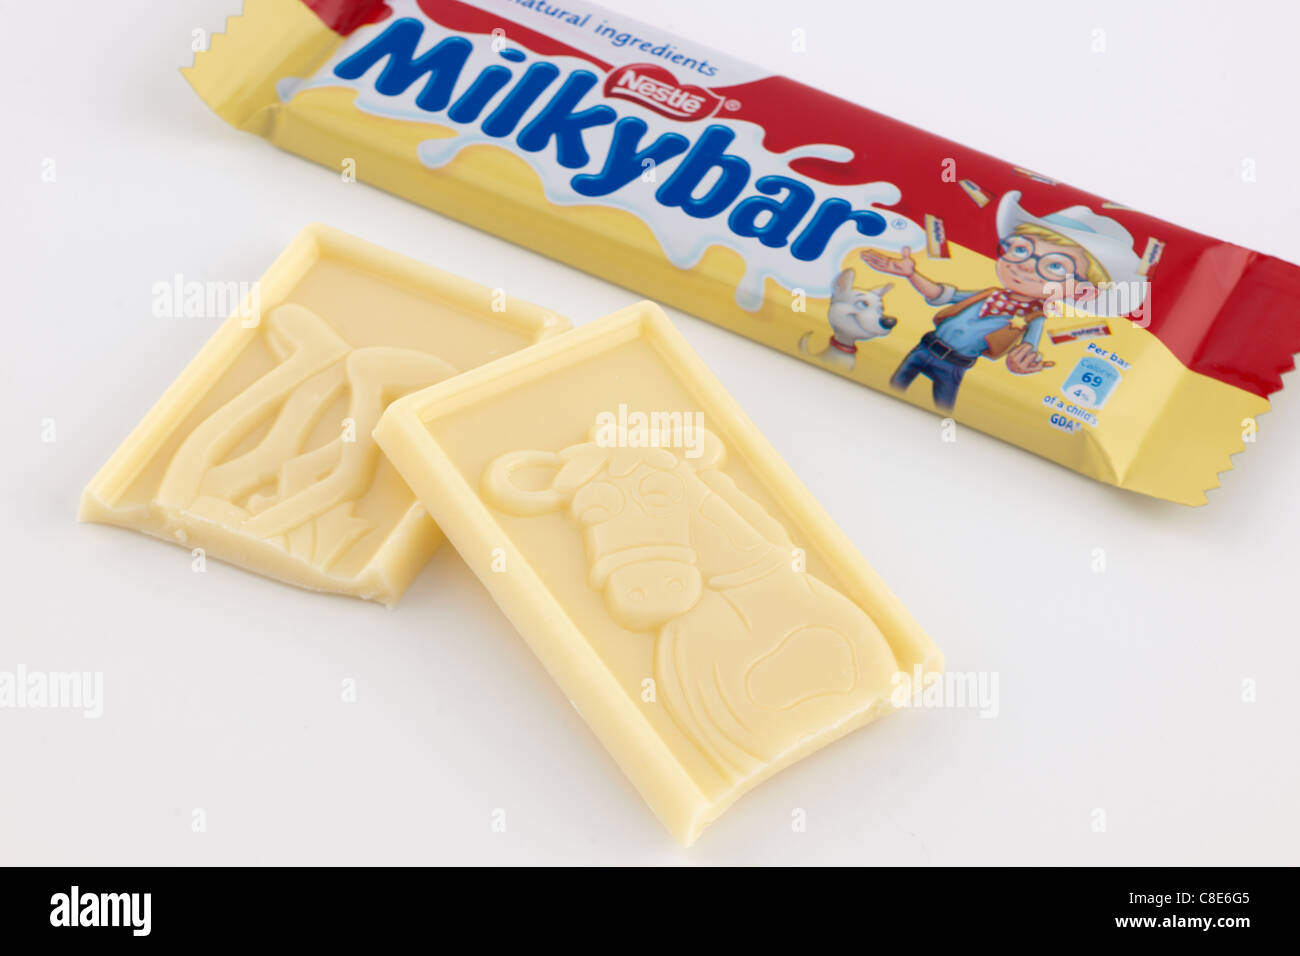 nestle milky bar chocolate - photo #11